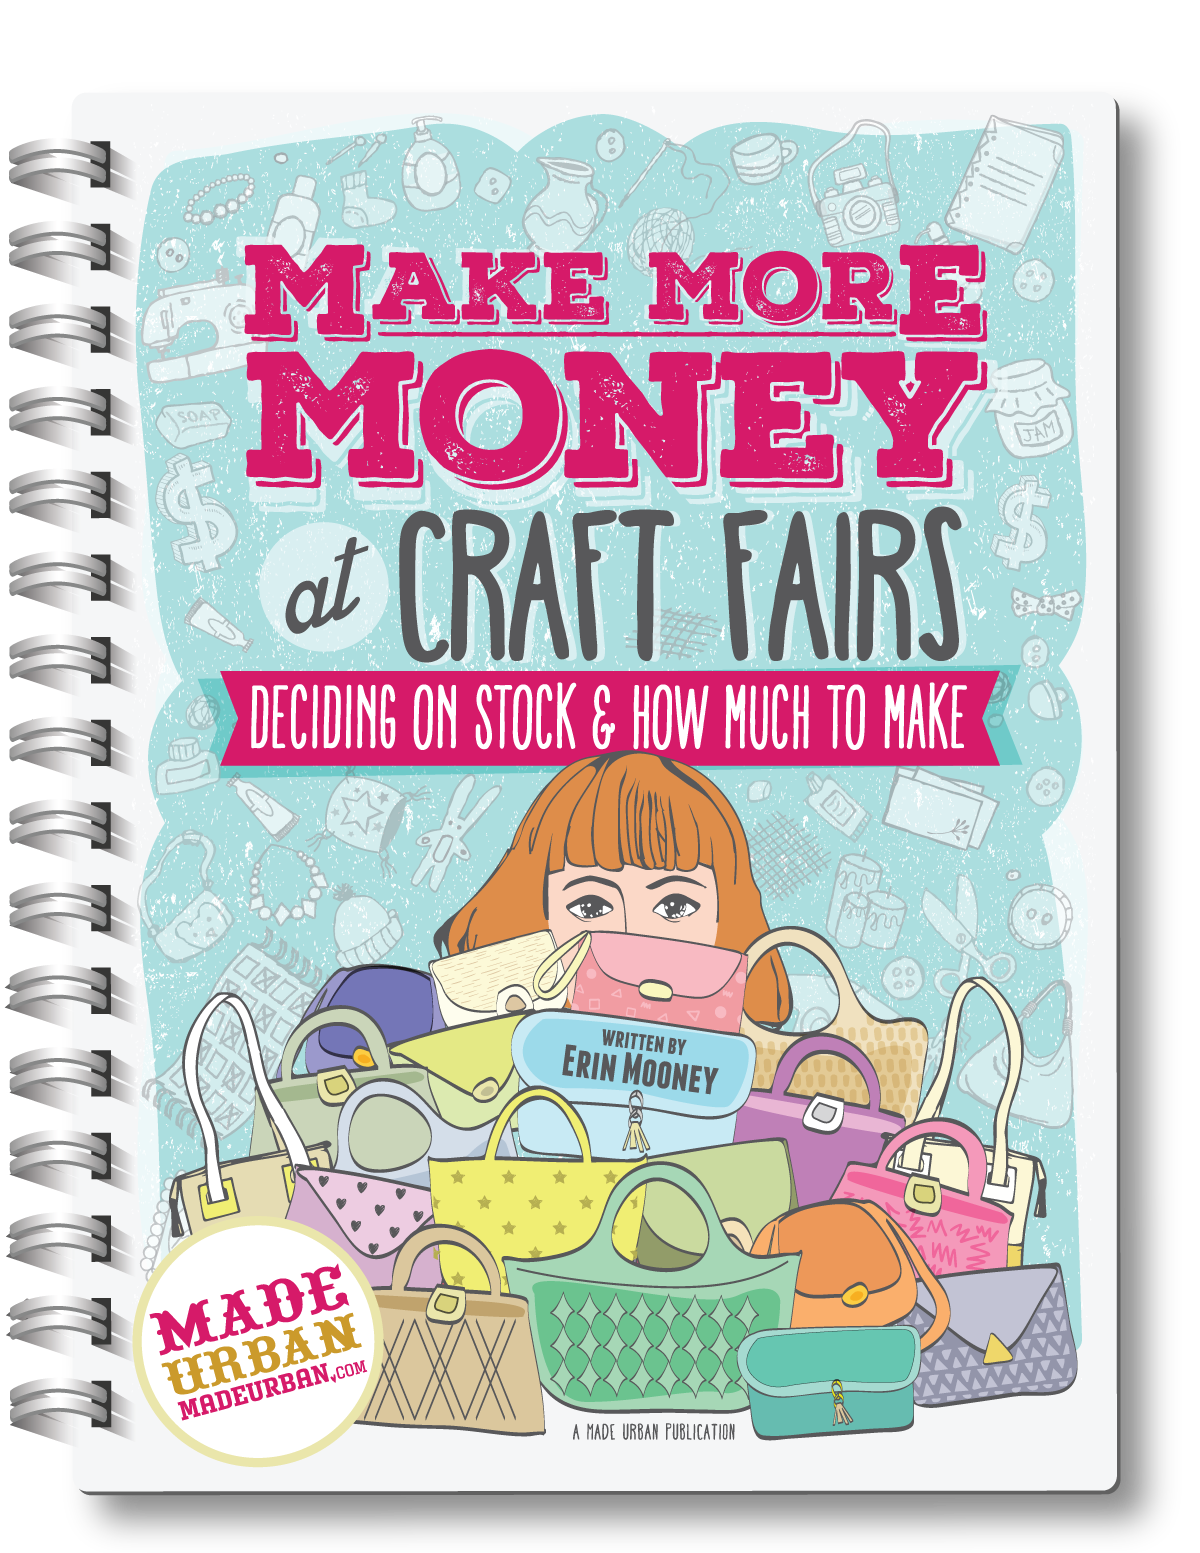 Make More Money at Craft Fairs - Deciding on Stock & How Much to Make ebook